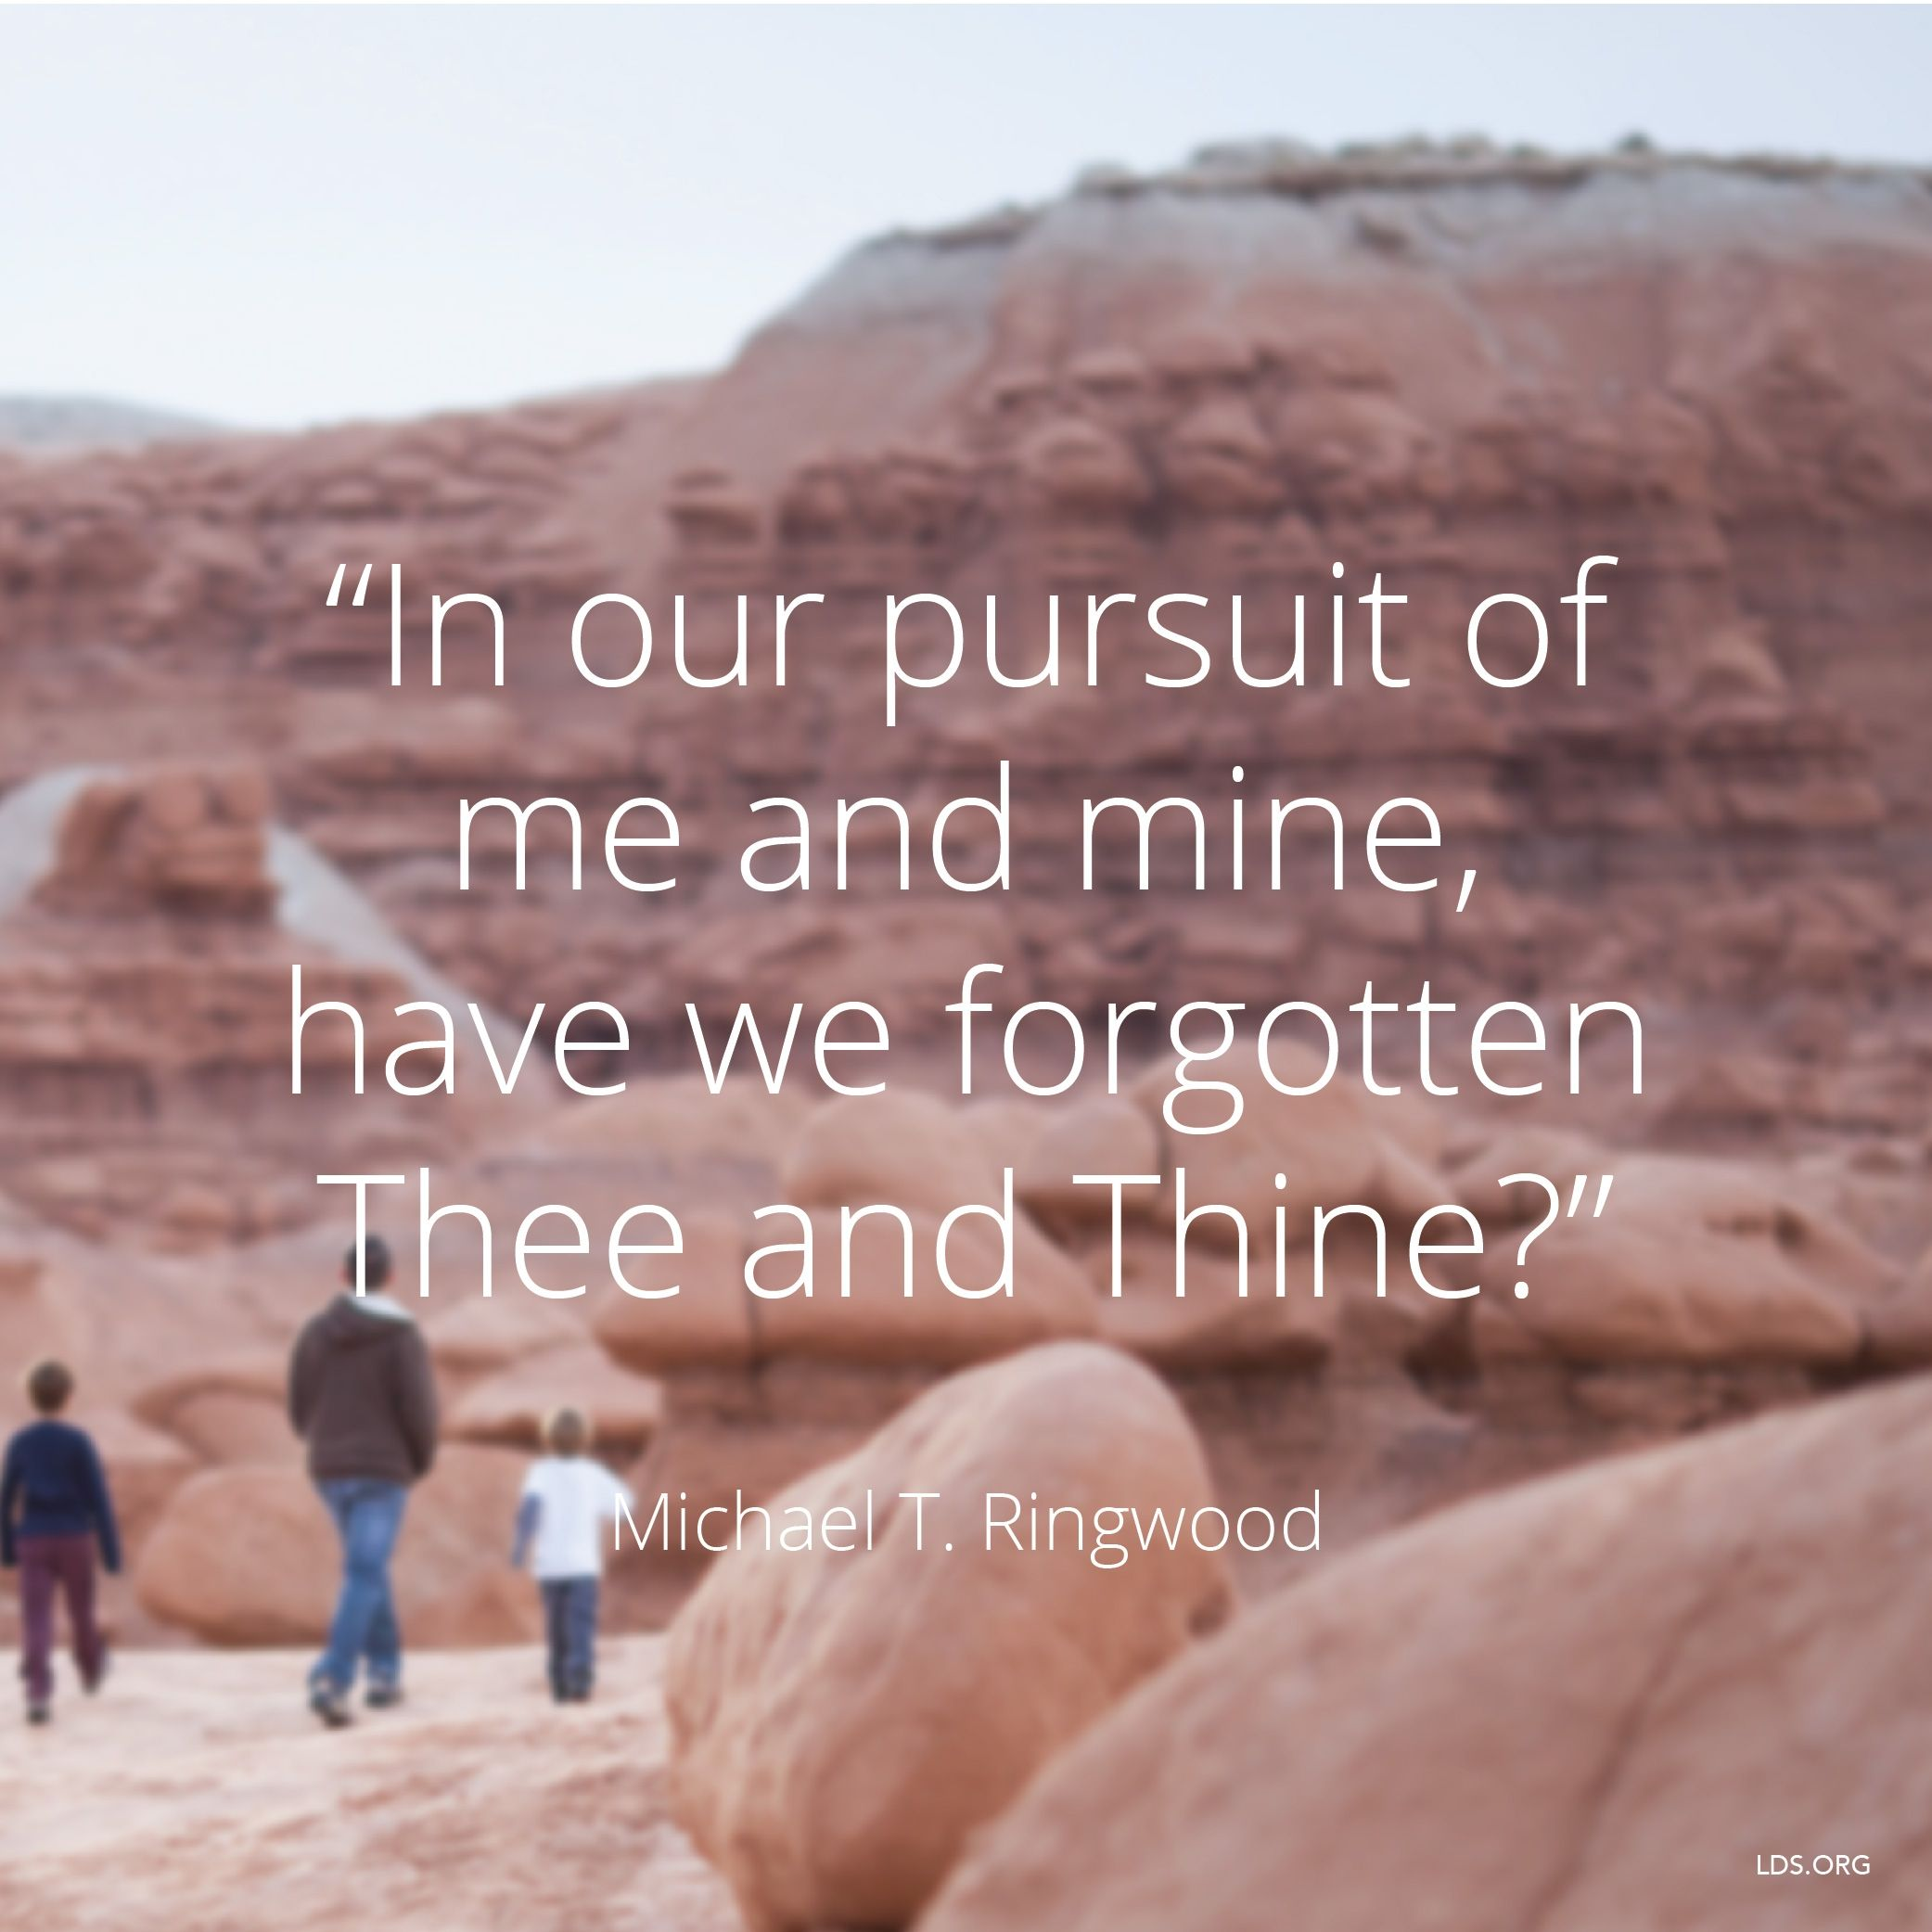 """""""In our pursuit of me and mine, have we forgotten Thee and Thine?""""—Elder Michael T. Ringwood, """"Truly Good and without Guile"""""""